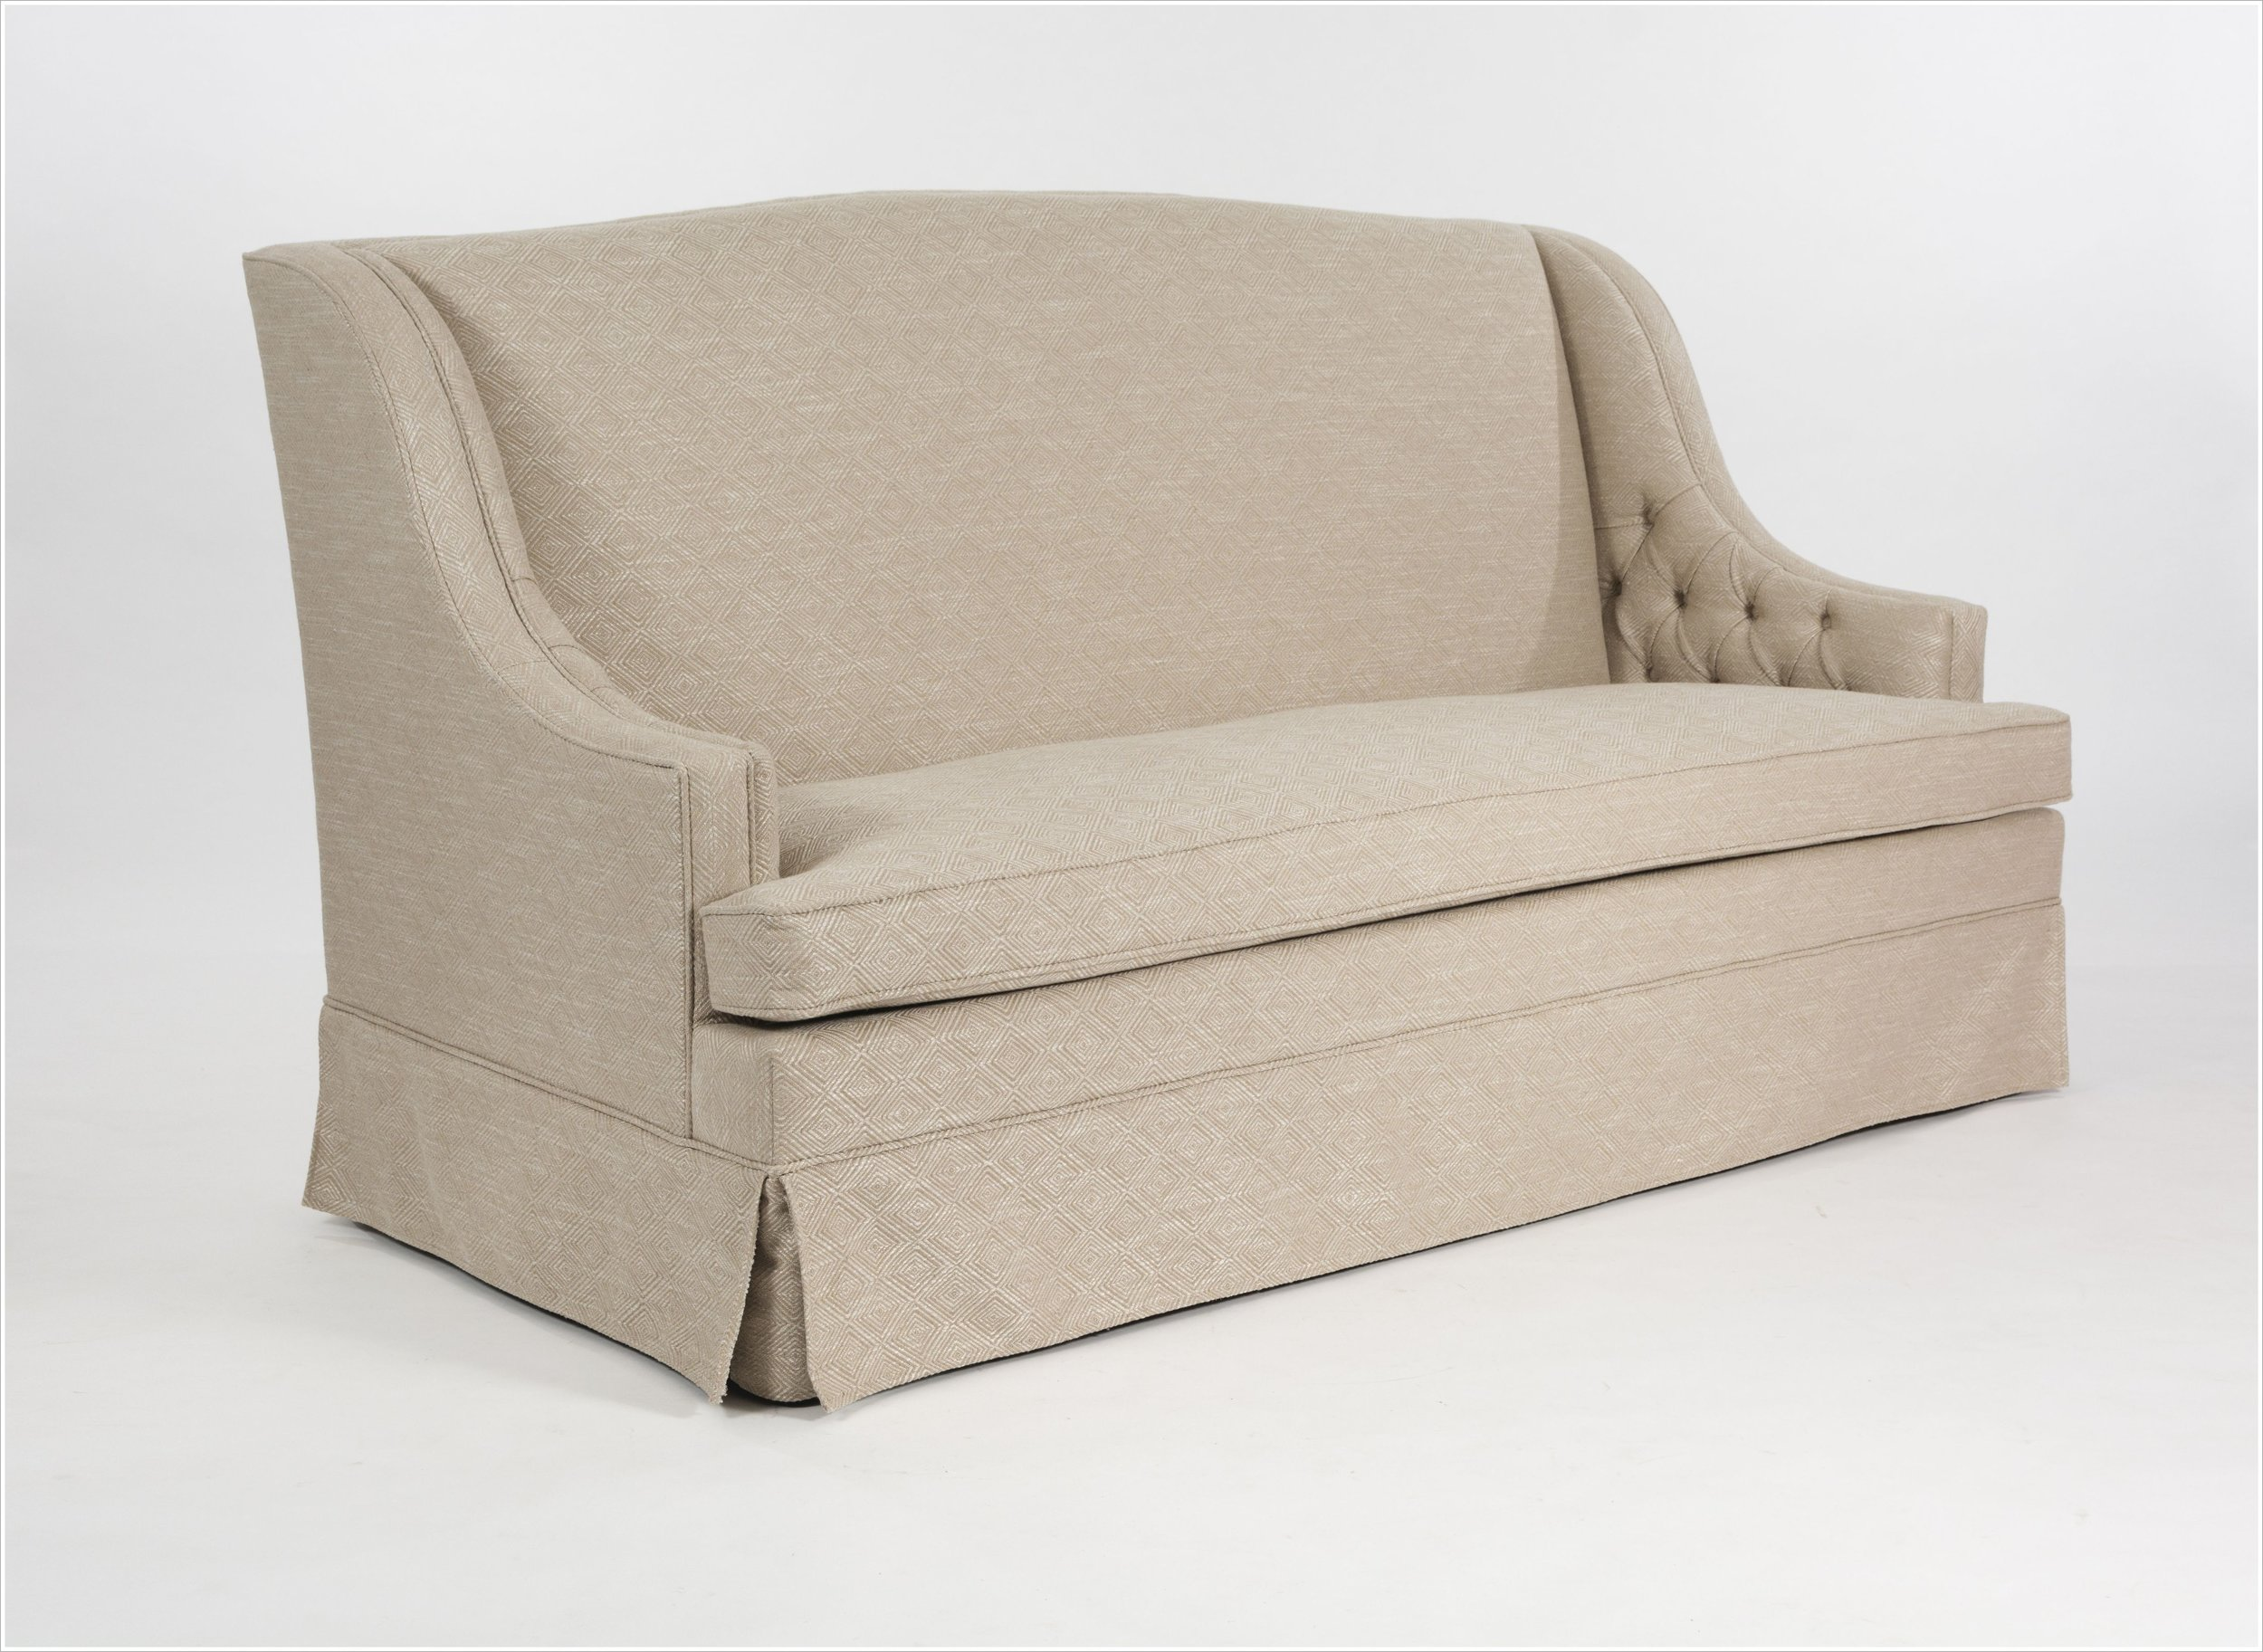 Custom Upholstered Sofa with Tufted Arms